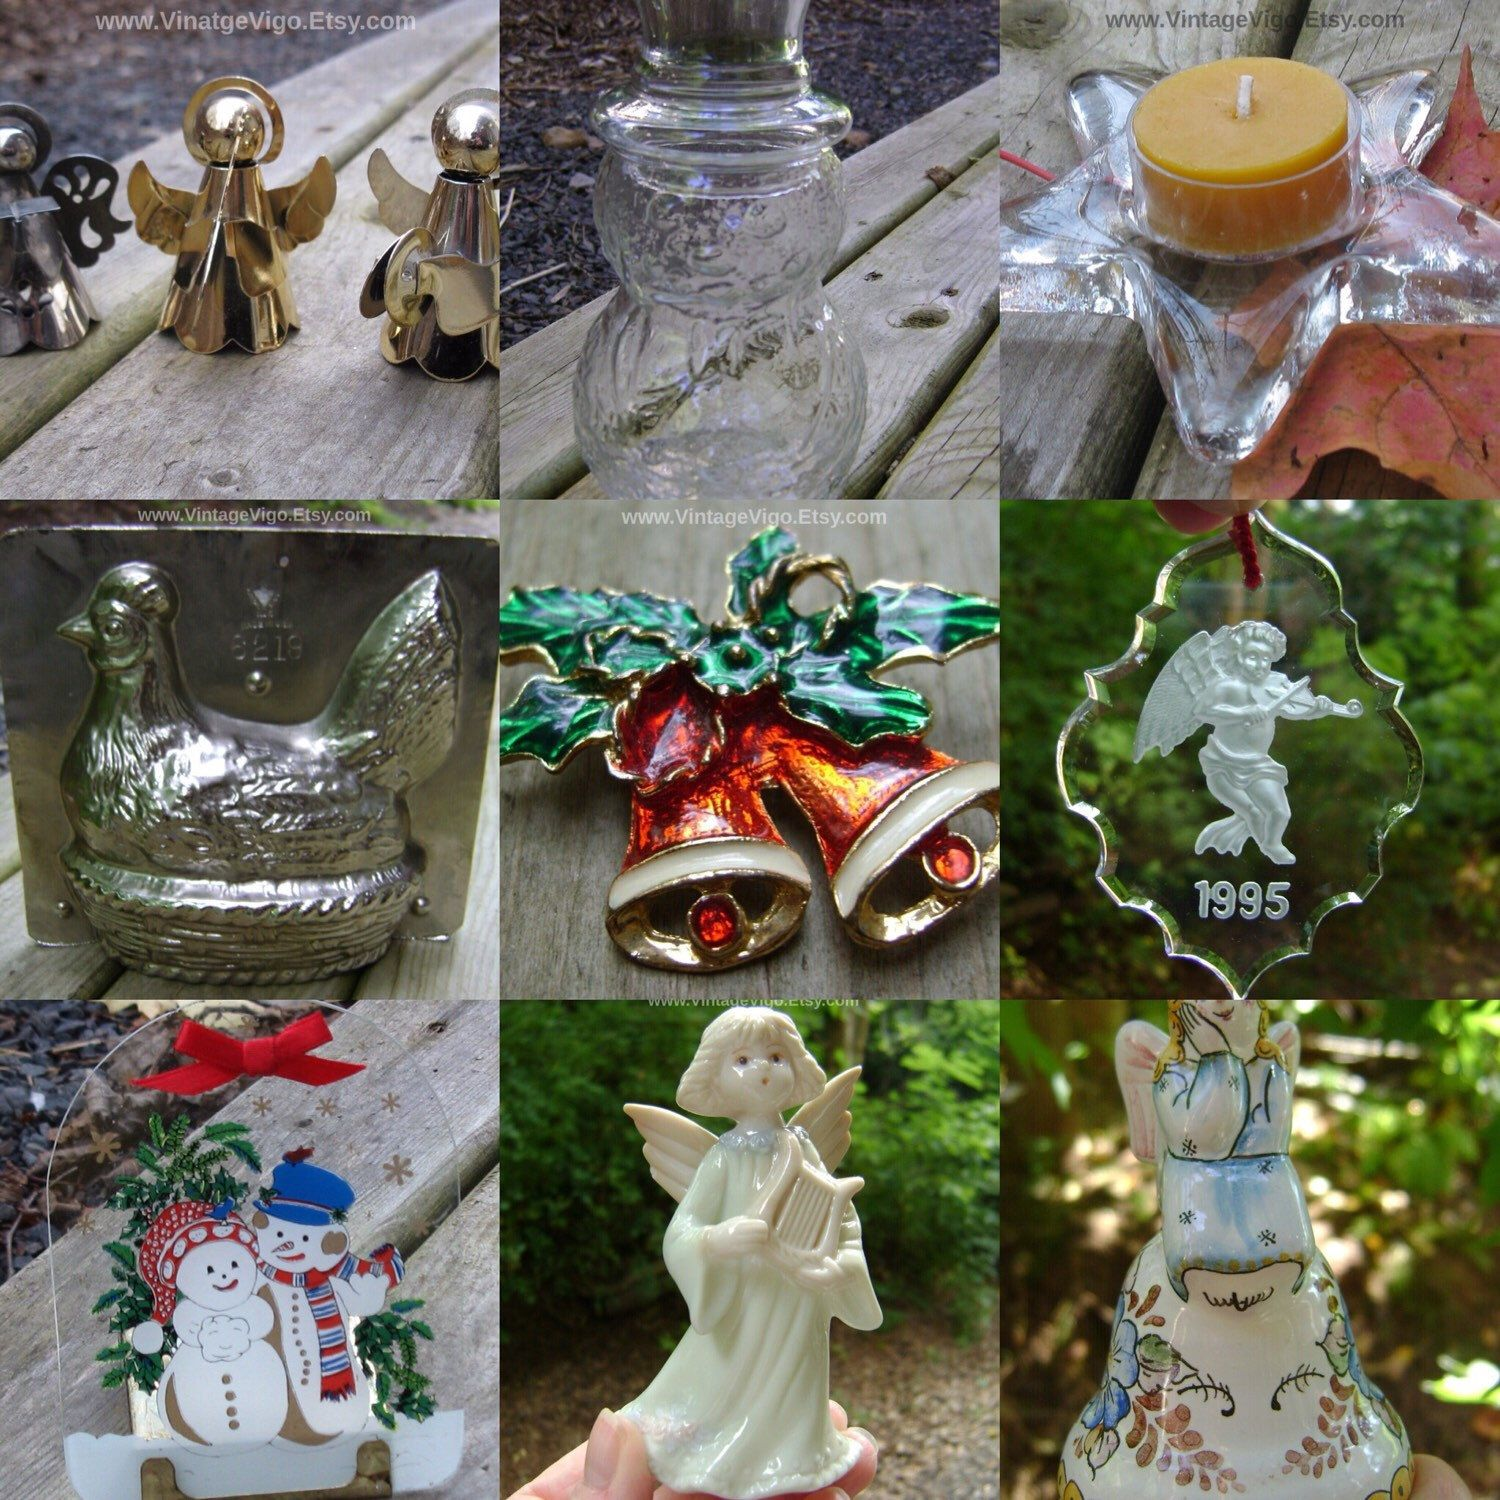 Year-end vintage sale at VintageVigo Etsy don't miss the ...